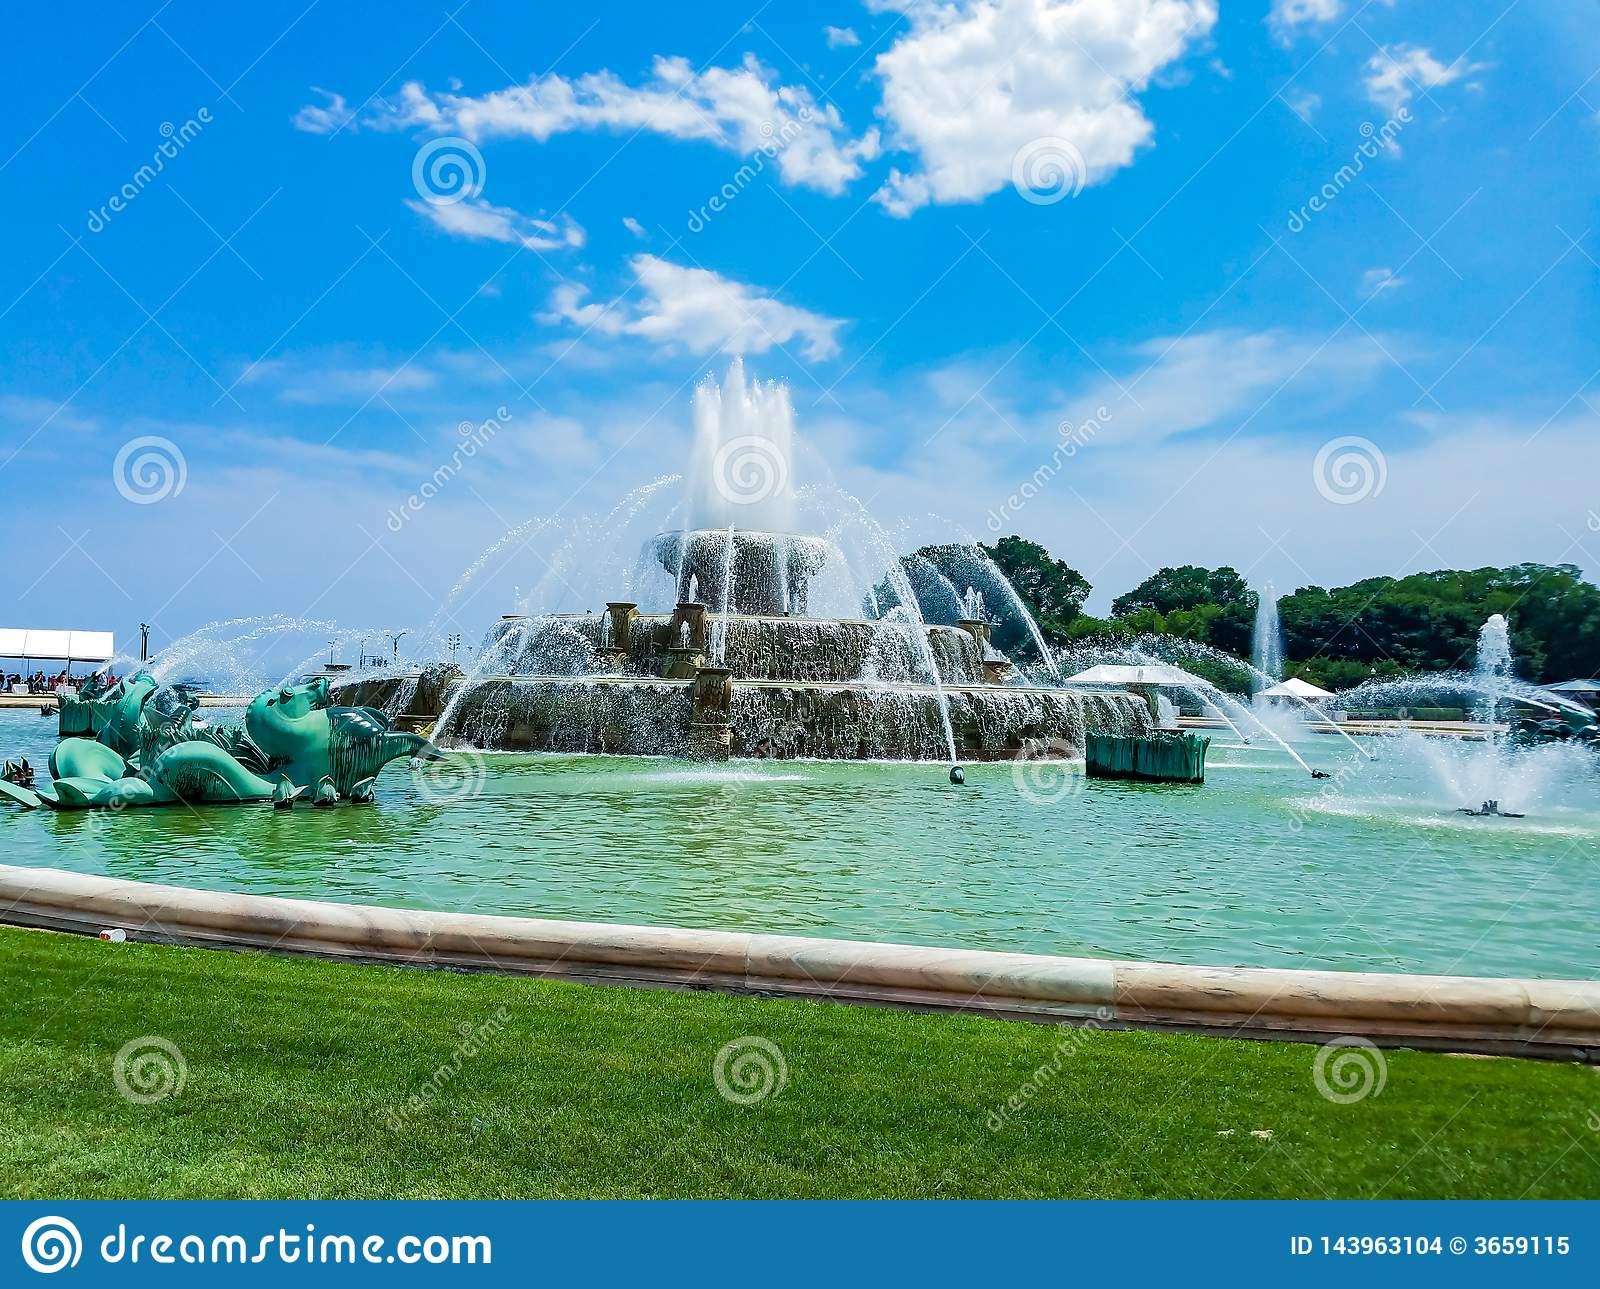 Chicago, Illinois, USA. 07 05 2018: Clarence Buckingham Fountain in Chicago with blue sky in the background